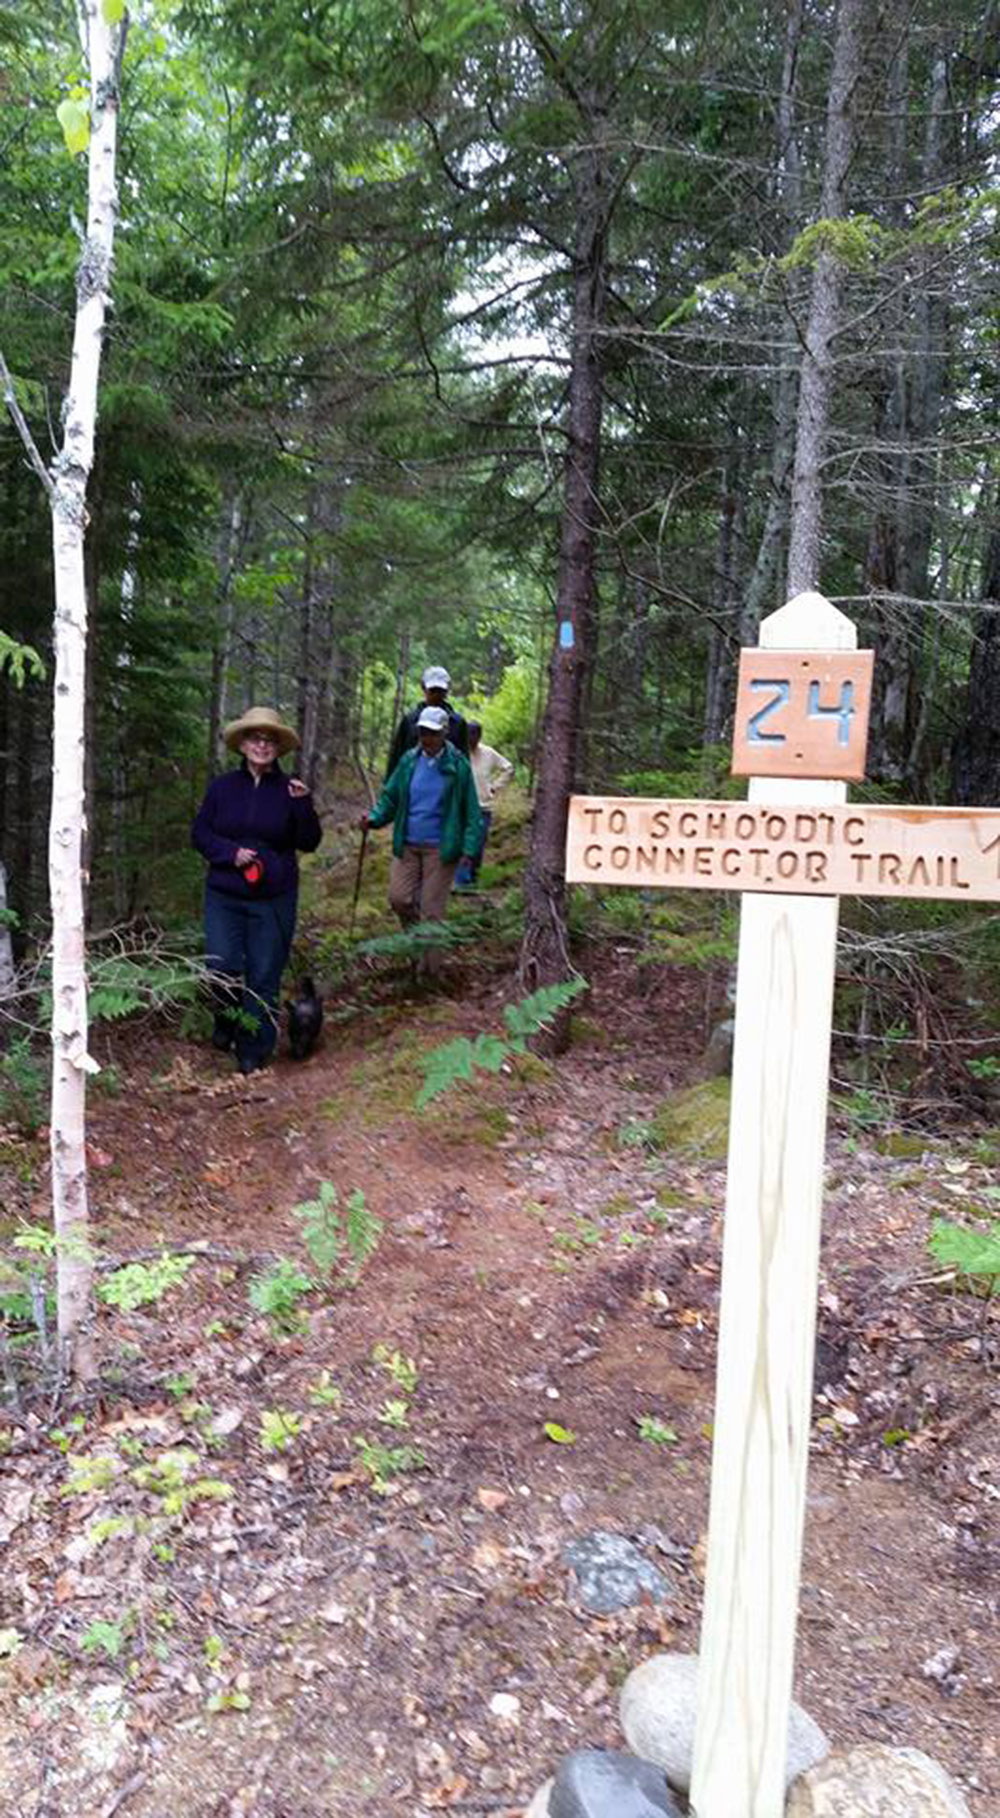 Schoodic Connector Trail. Photo credit Eileen Hall.